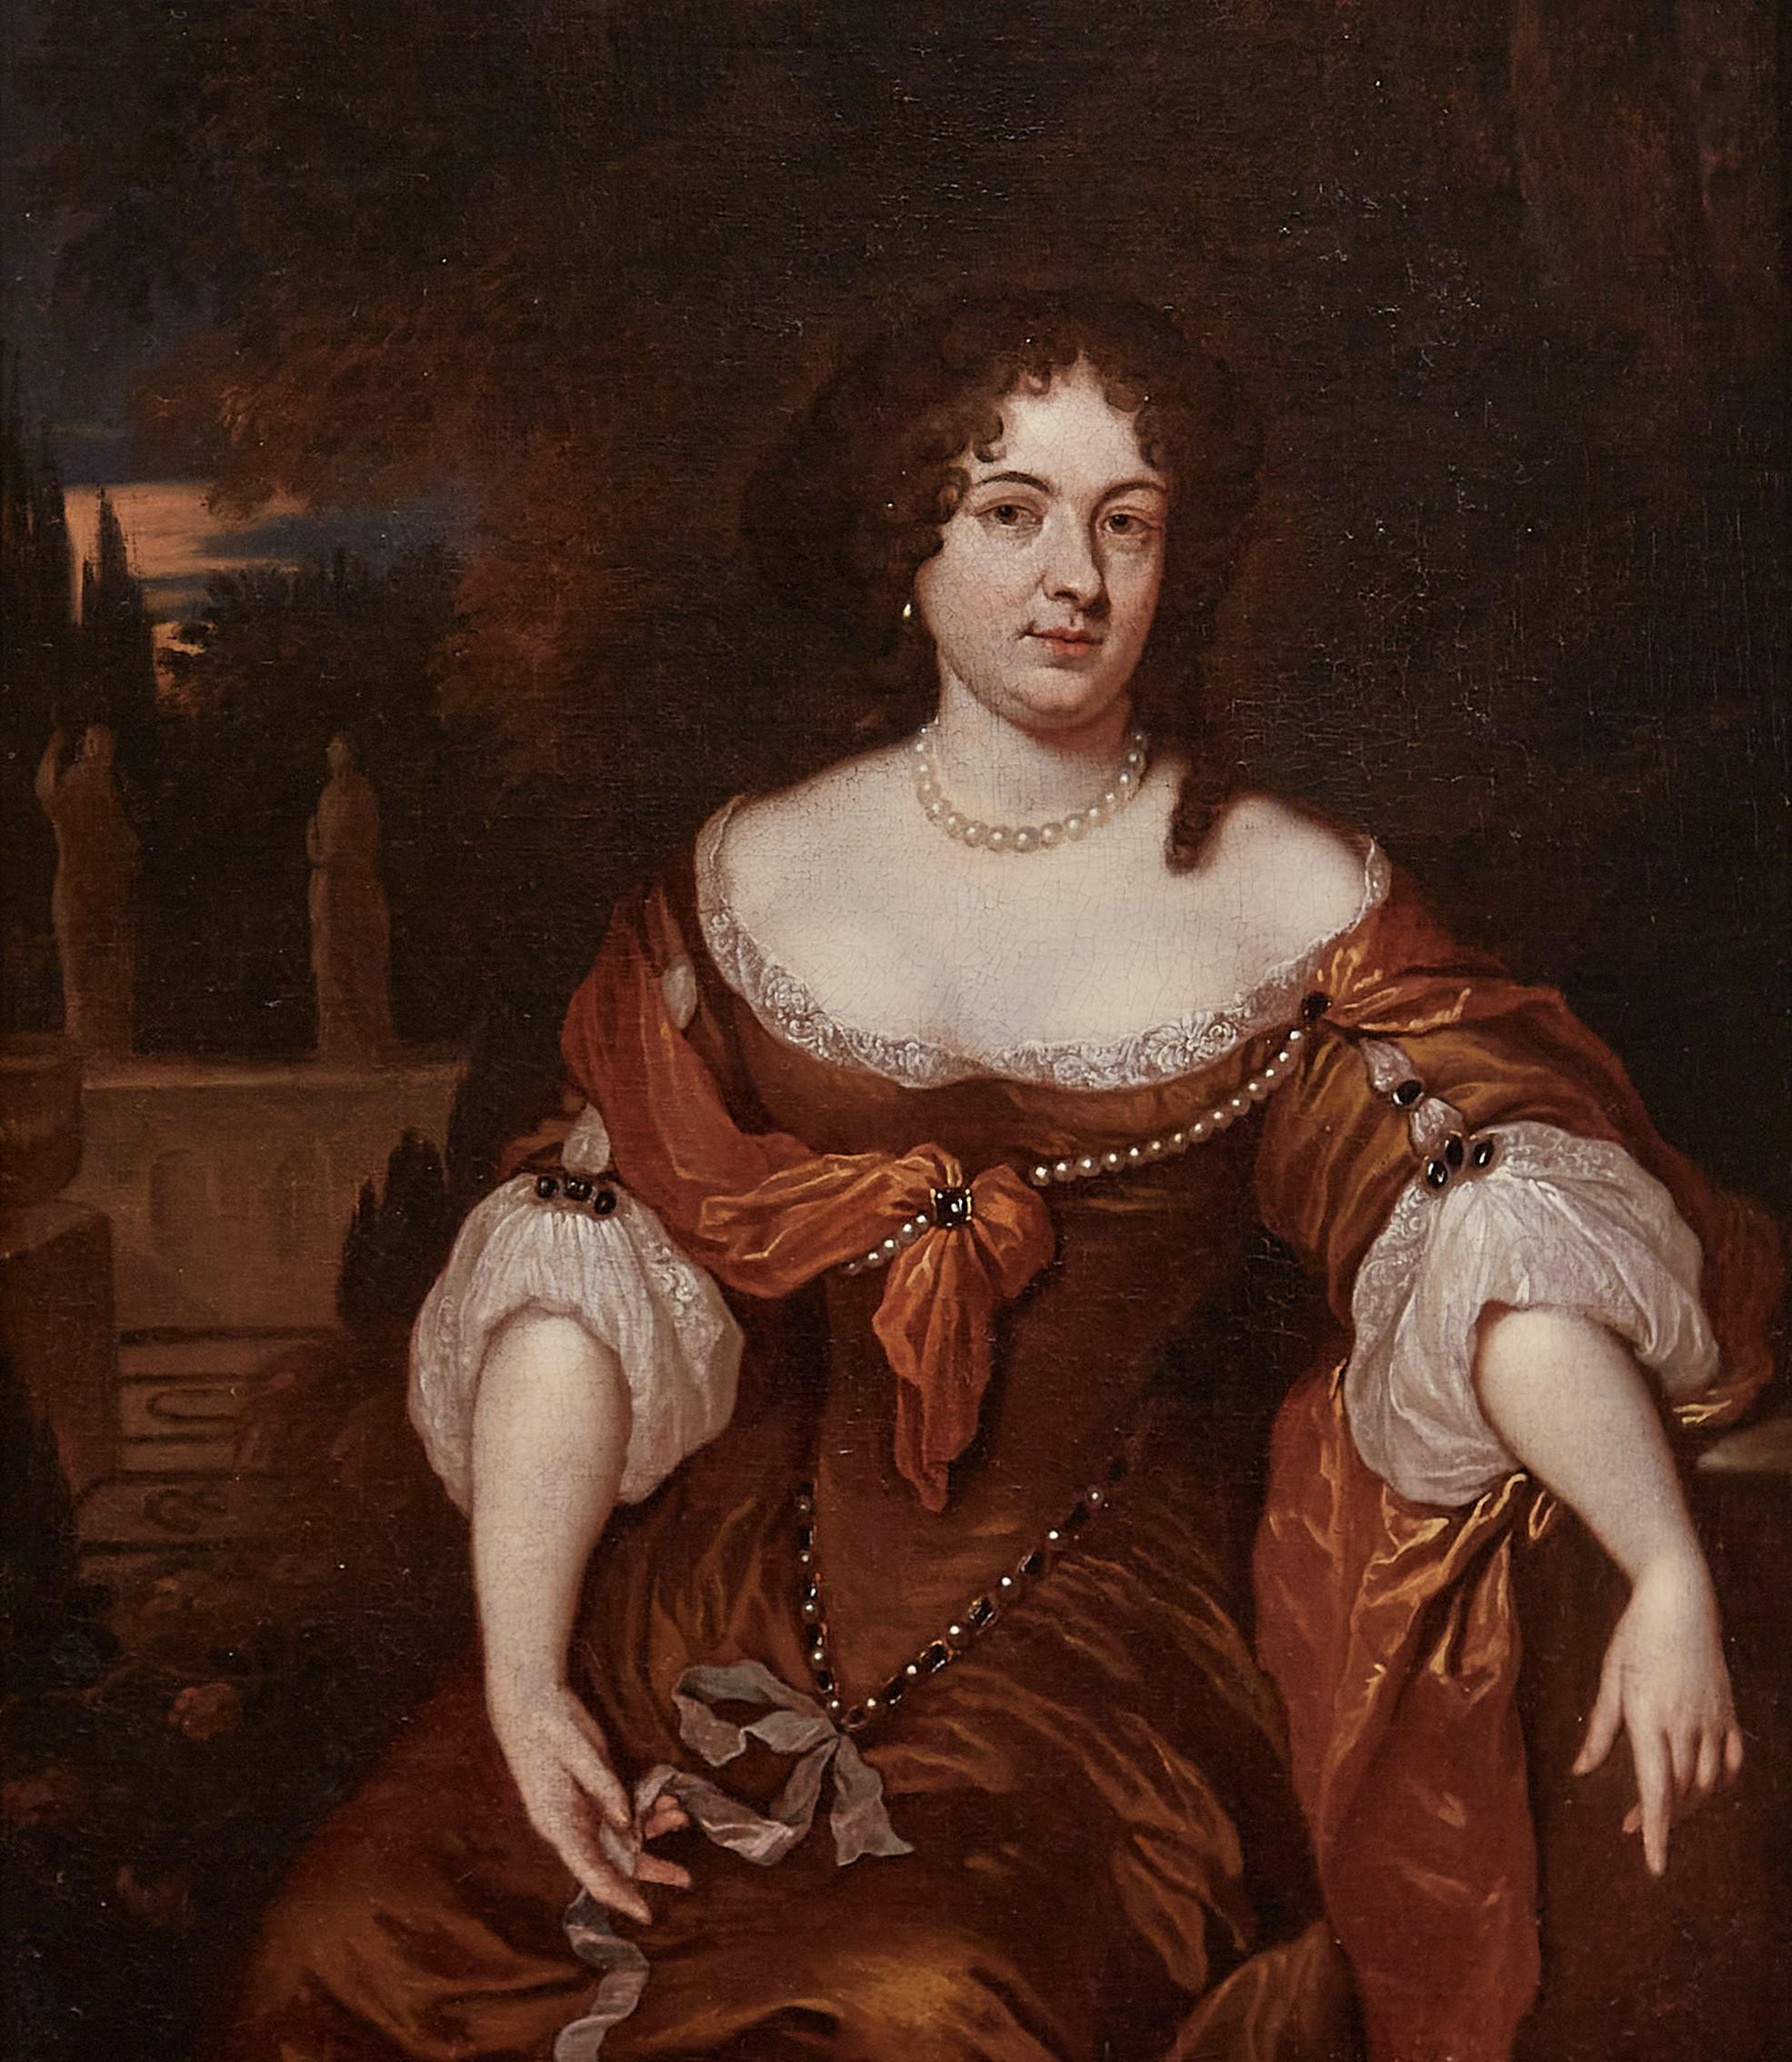 17th century Dutch Portrait Painting of a Lady seated in a landscape